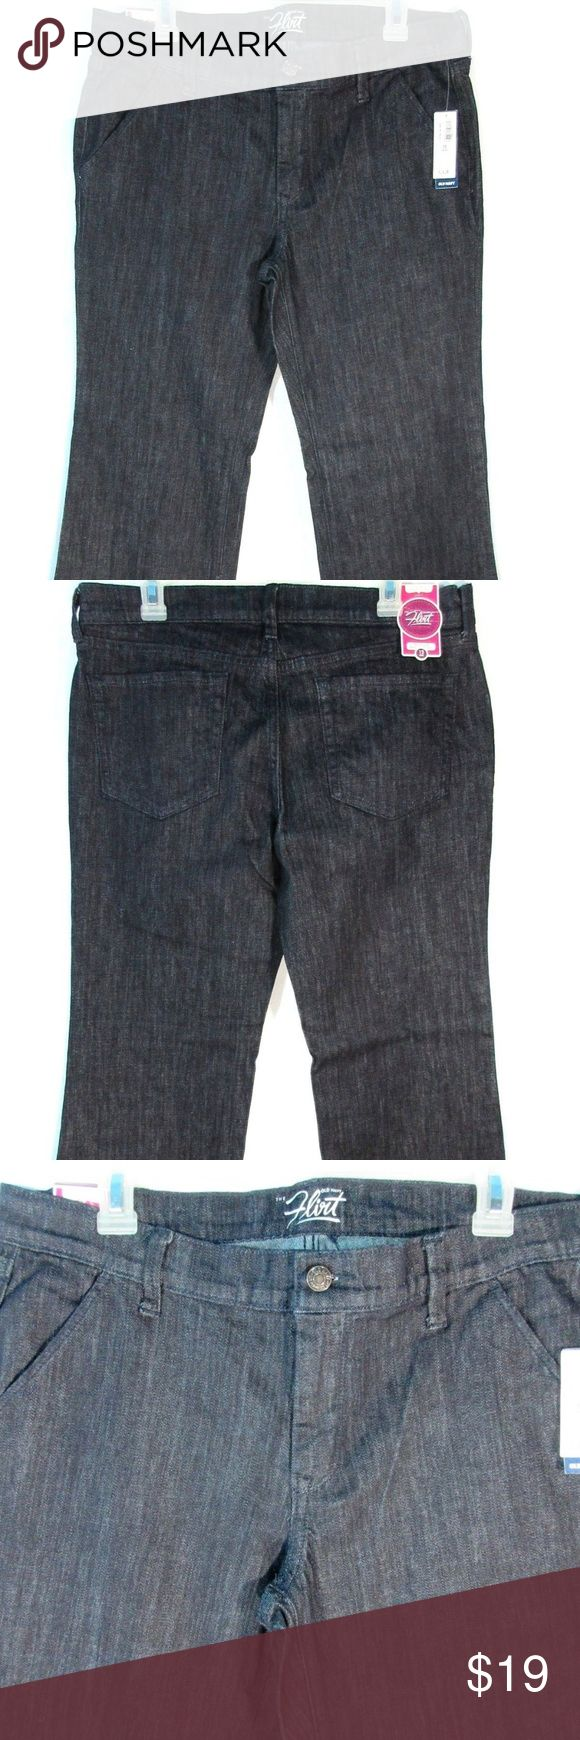 "Old Navy The Flirt Flare Womens Jeans Size 12 NEW Old Navy The Flirt Flare Womens Jeans Size 12 Short Stretch Mid Rise Trouser. New with Tags. **There is small hole on the lower left back leg and a fraying mark on the right lower front leg (no hole) Please see last pics. (D38)  Measurements: Waist 34"" Inseam 28.5"" Outseam 39"" Leg Opening 23"" Front Rise 9.5"" Back Rise 13"" Hips 41"" Old Navy Jeans Flare & Wide Leg"